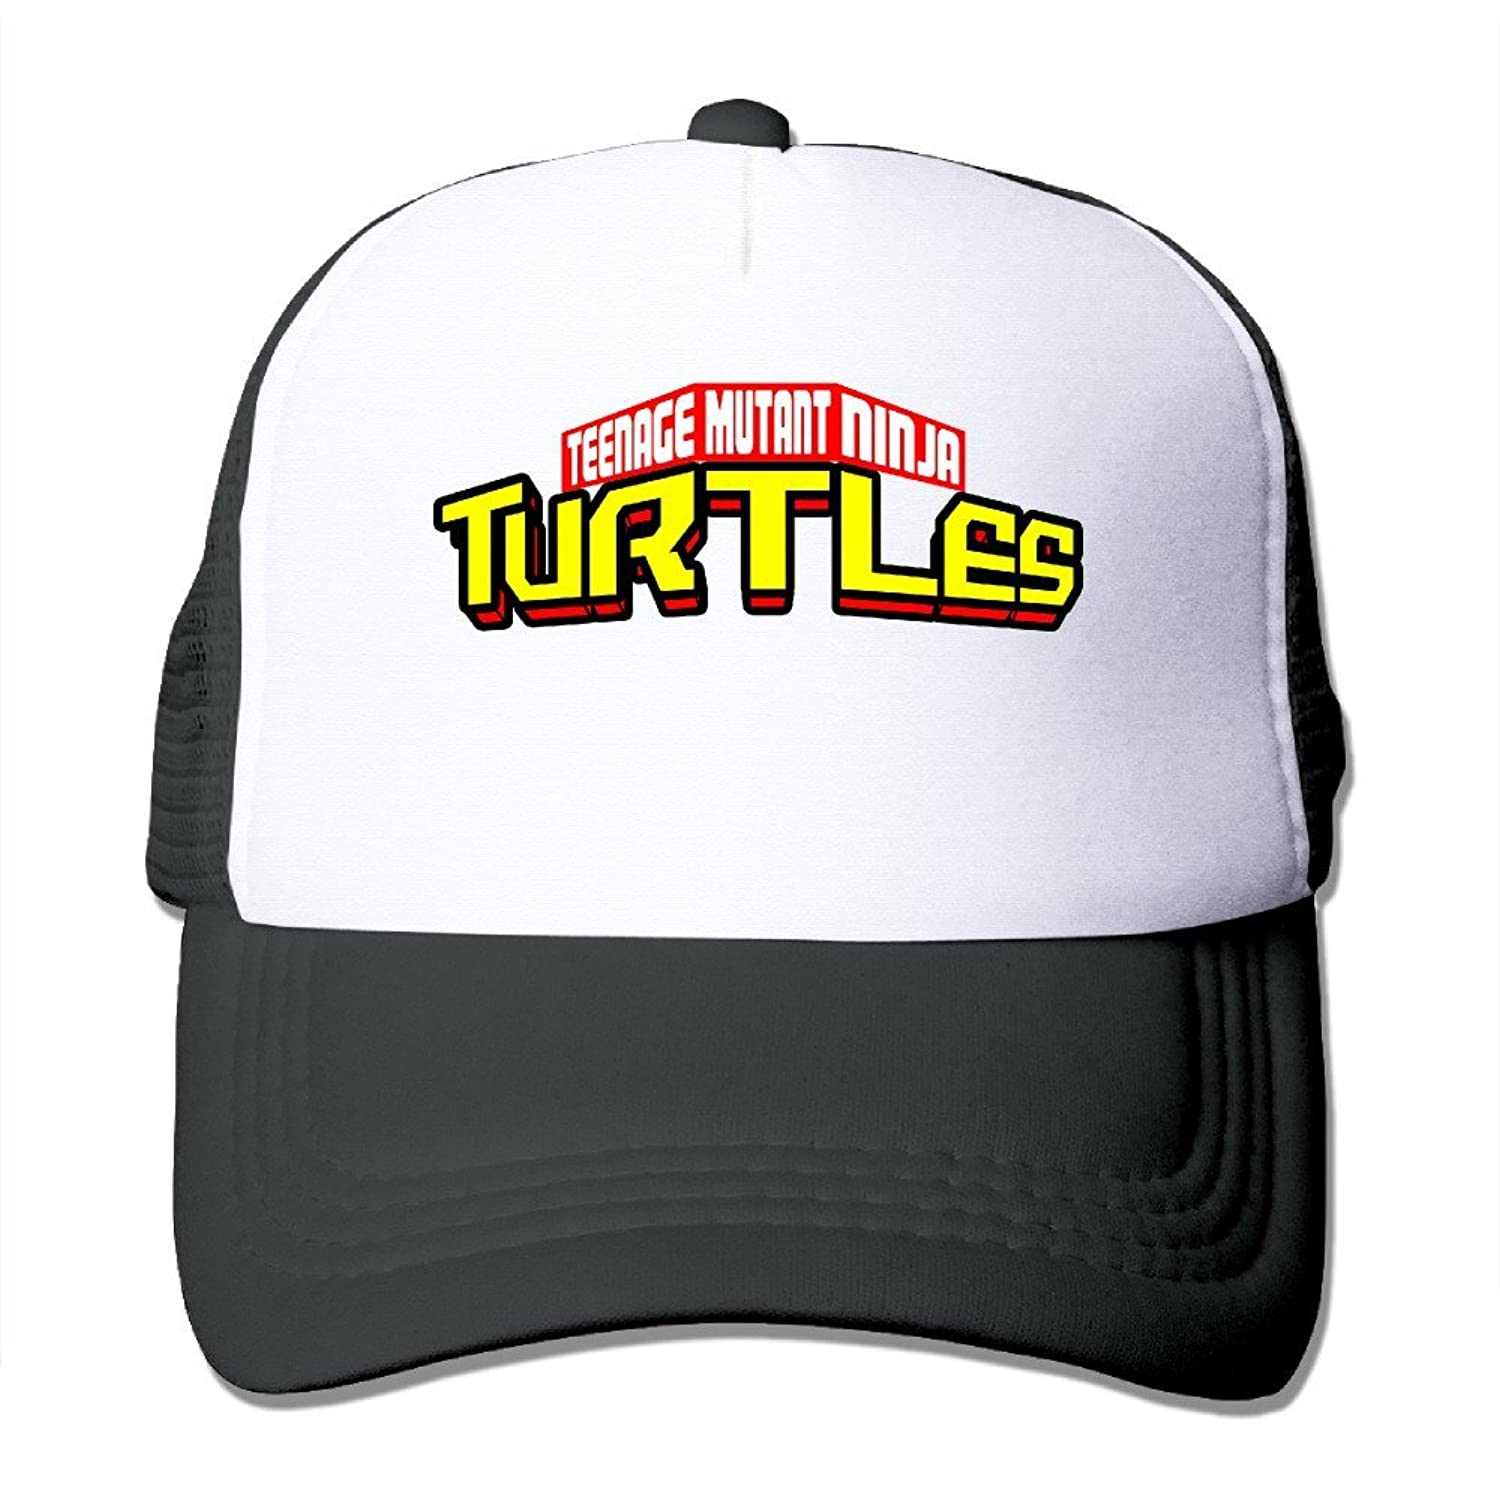 POPYol Unisex Teenage Mutant Ninja Turtles Adjustable Mesh Baseball Hats Caps